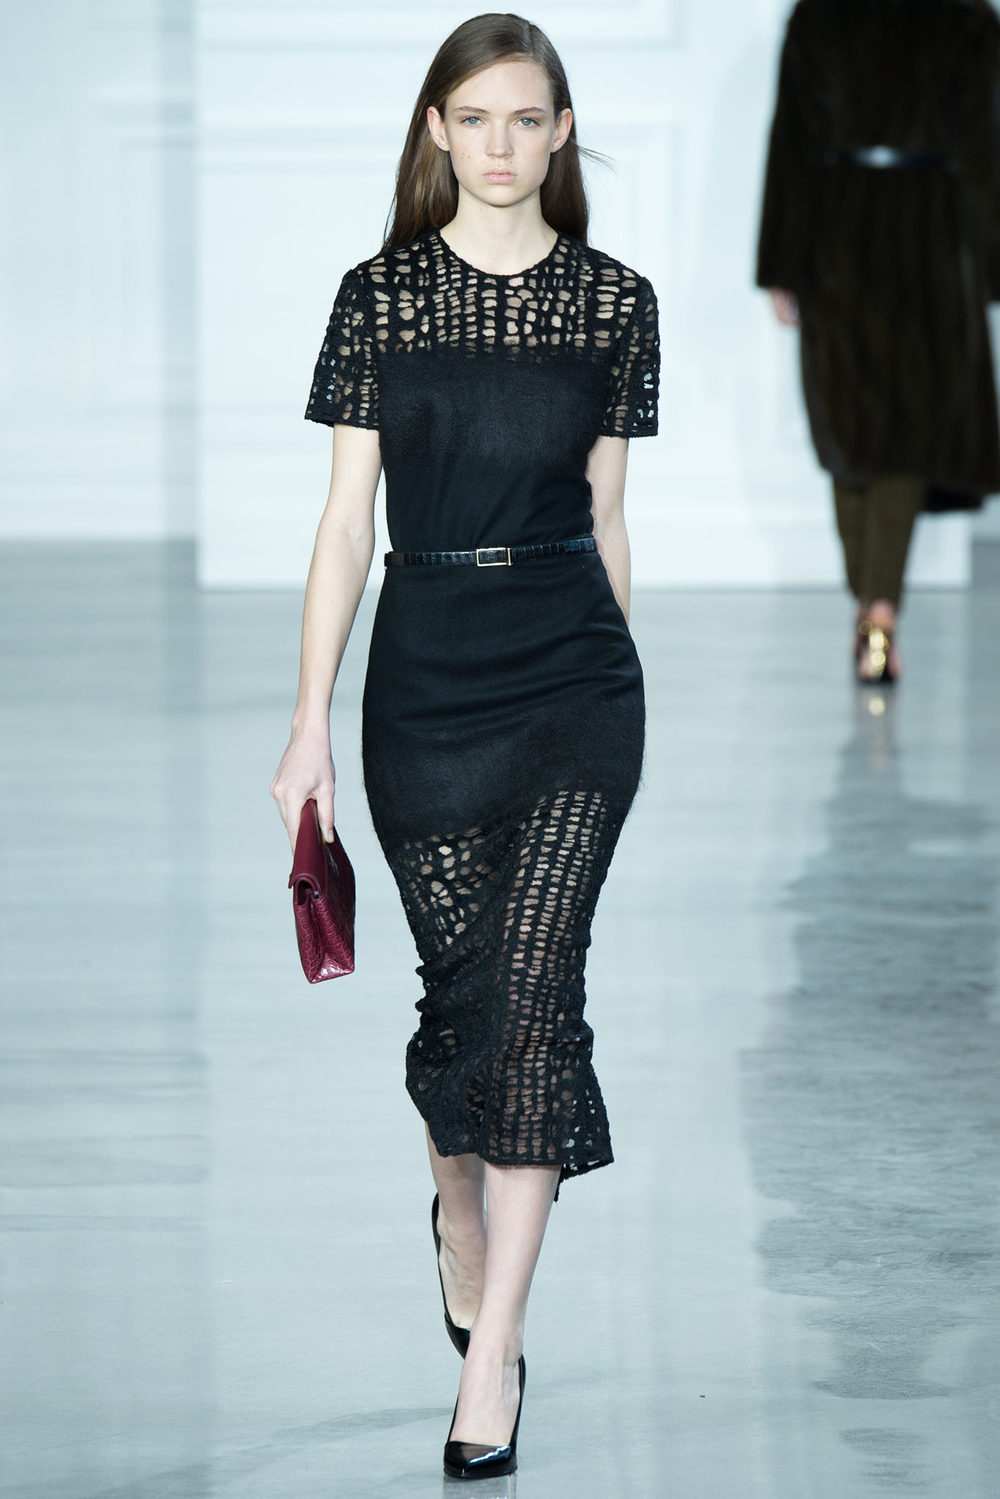 Photos: Jason Wu